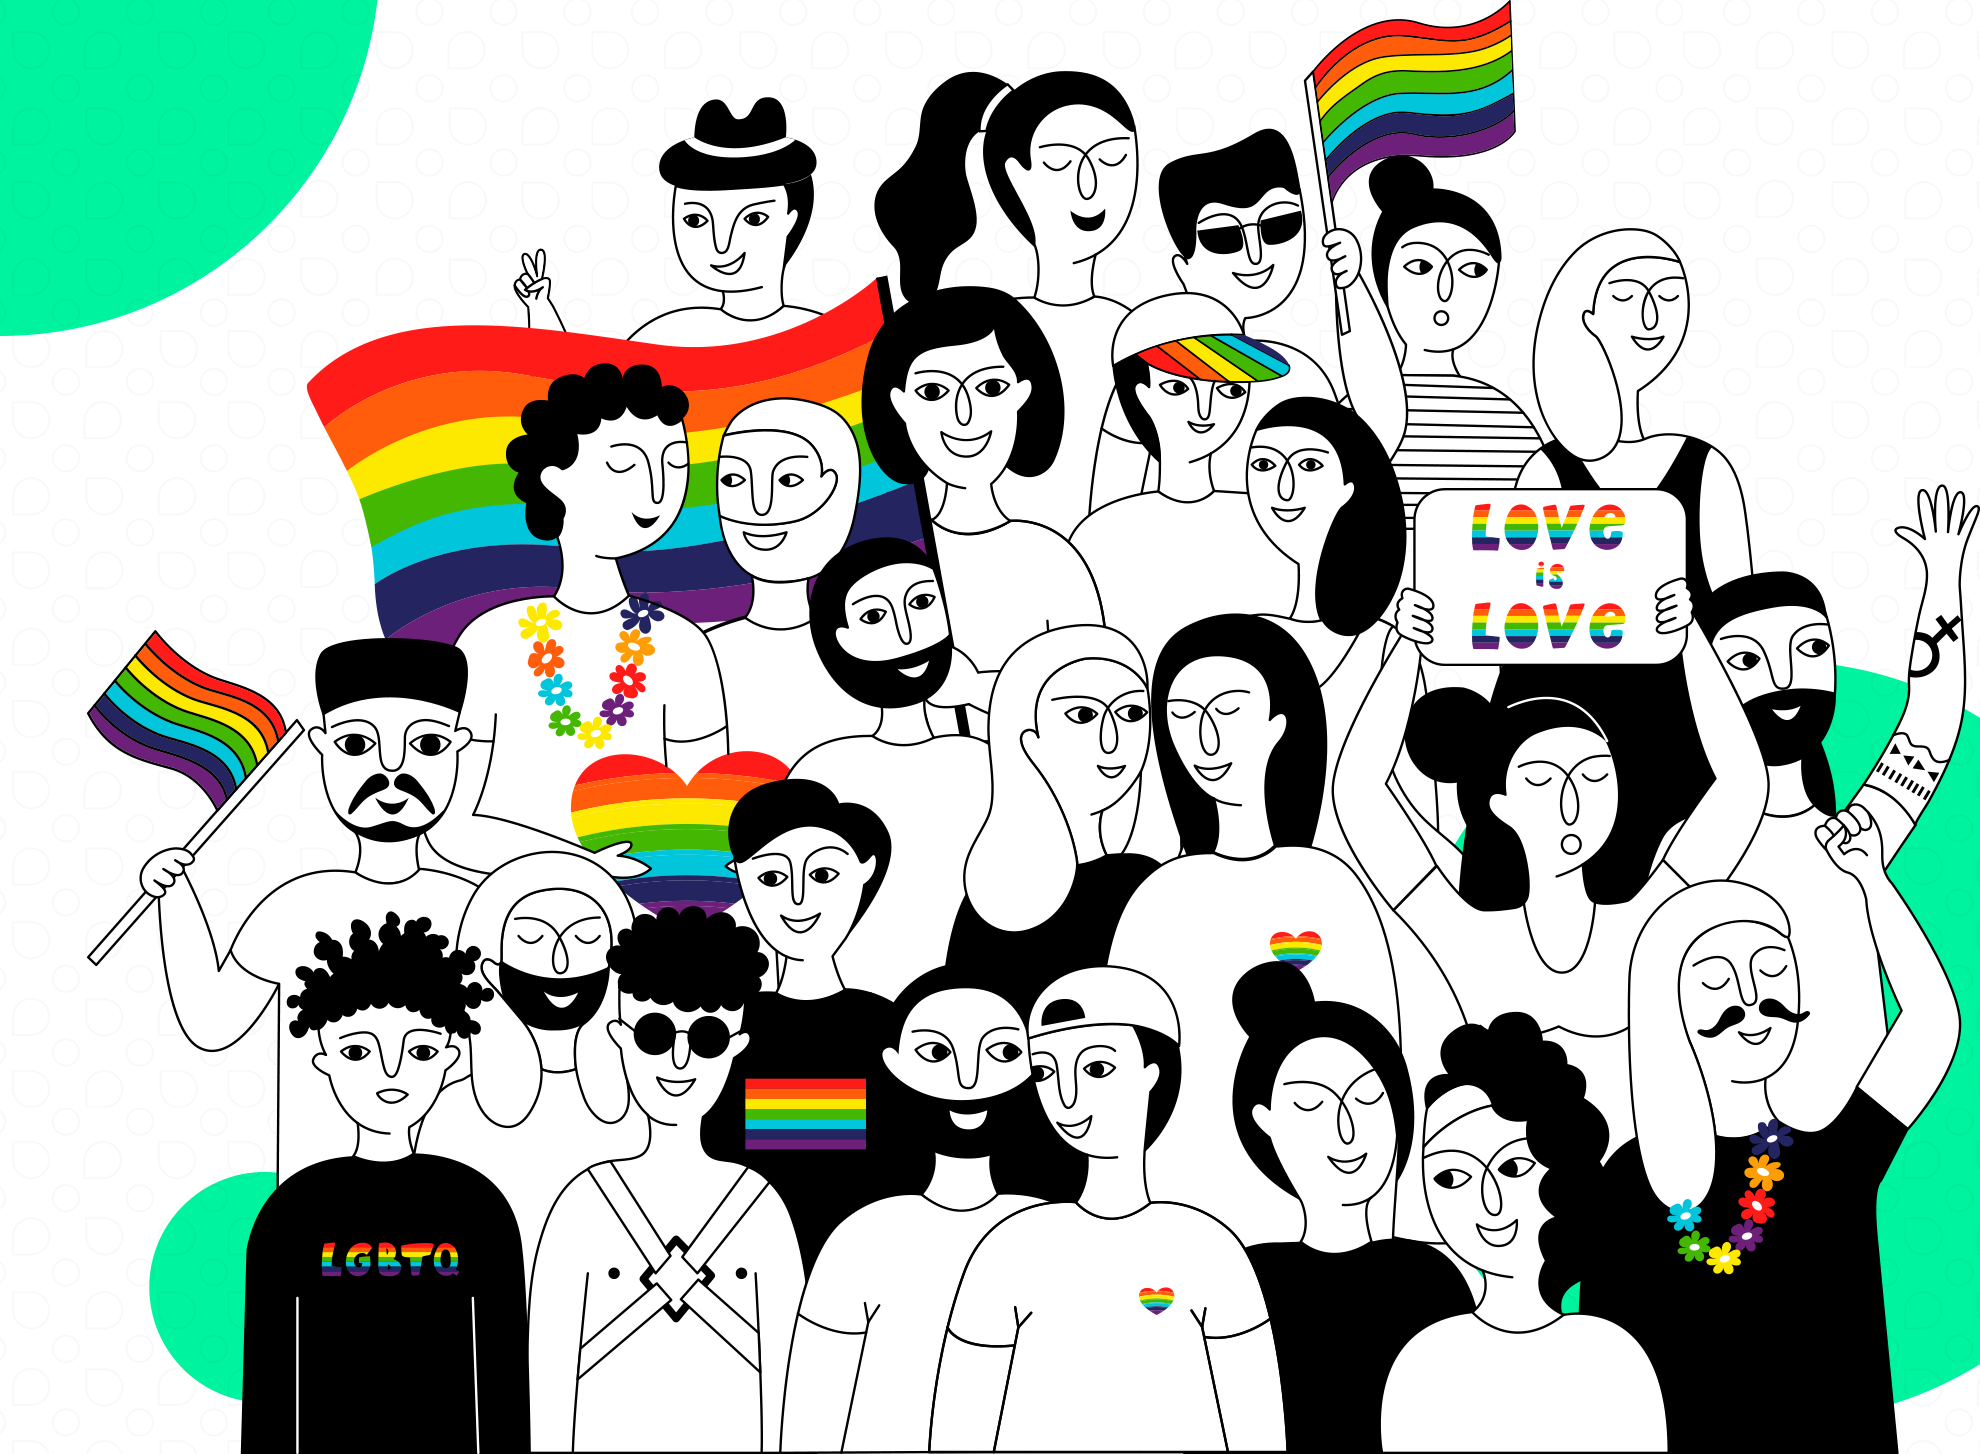 Graphic promoting support of the LGBTQ+ community